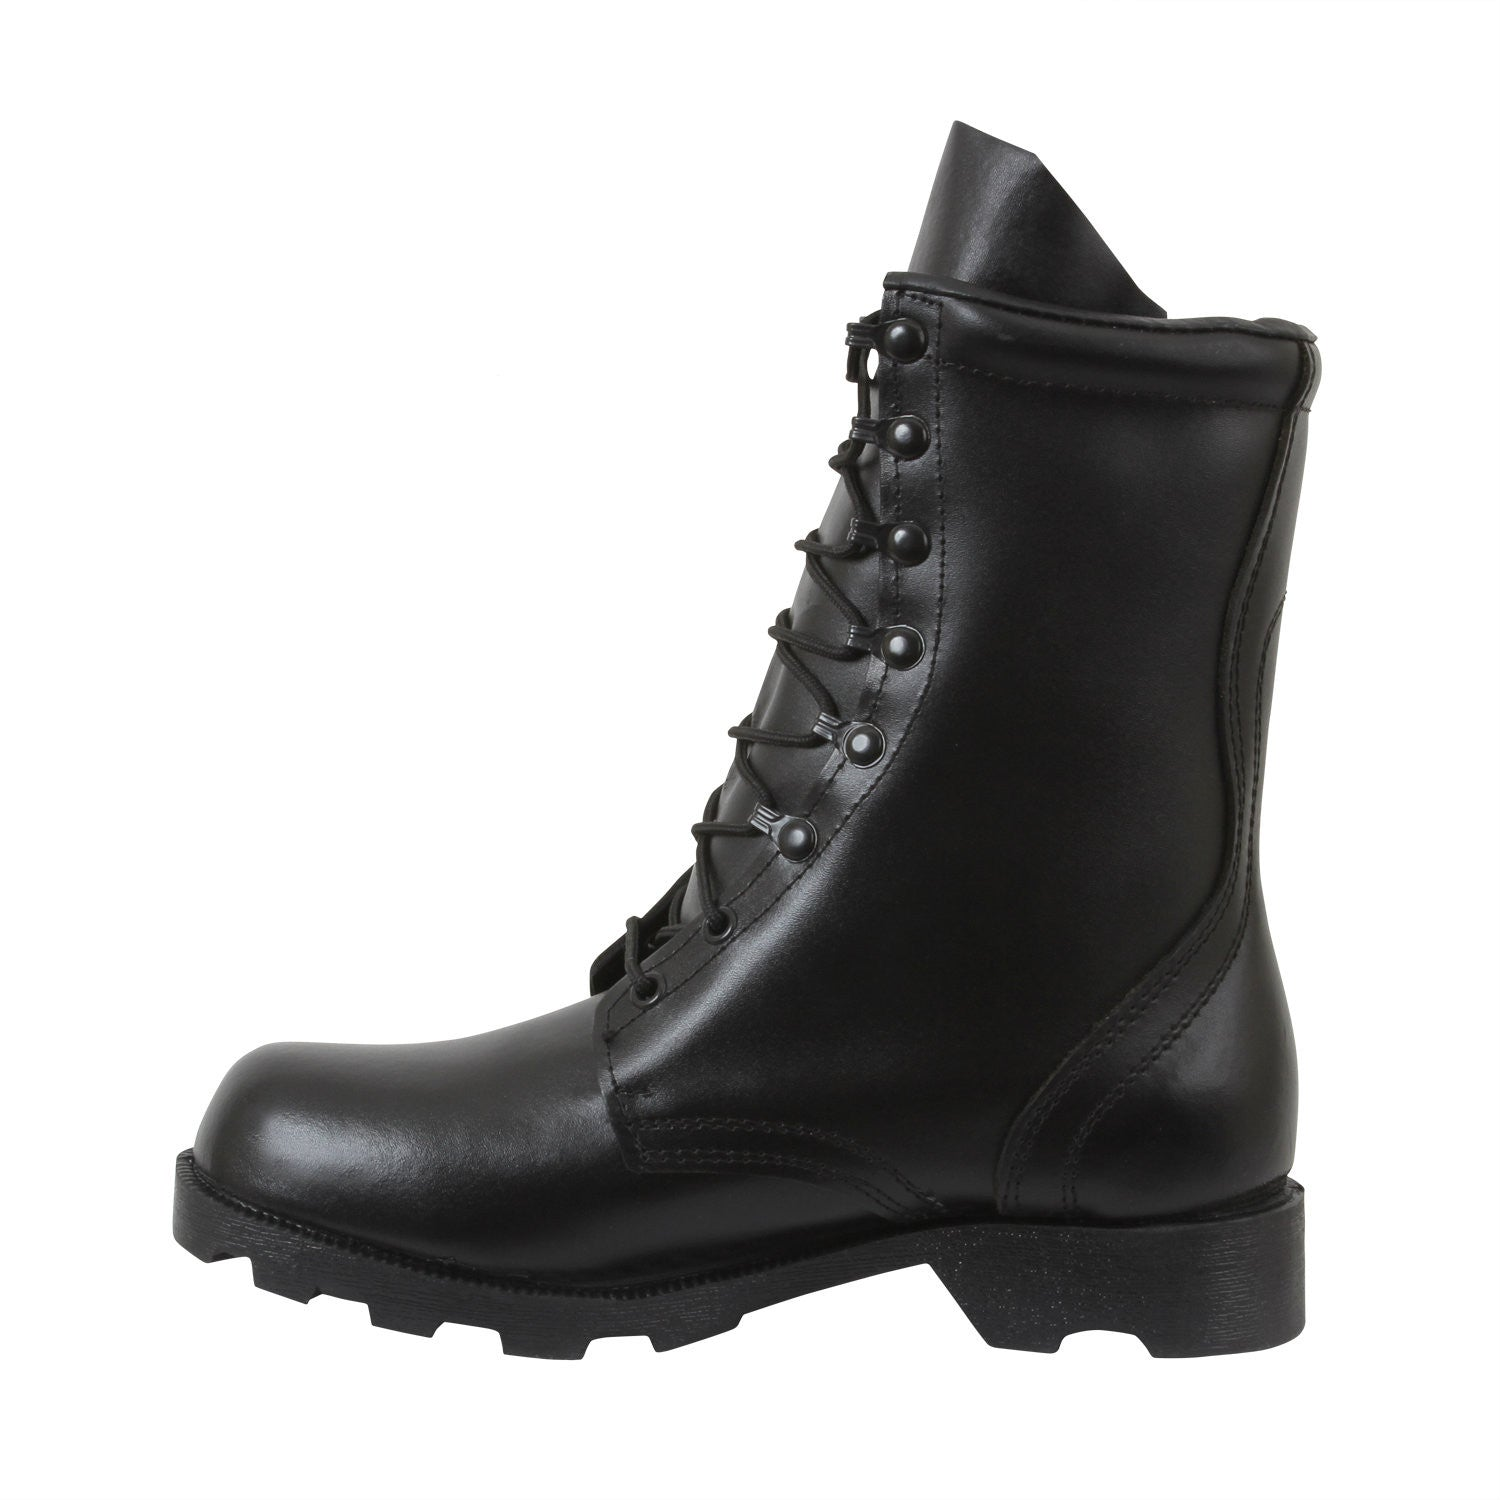 GI Type Speedlace Combat Boot Black